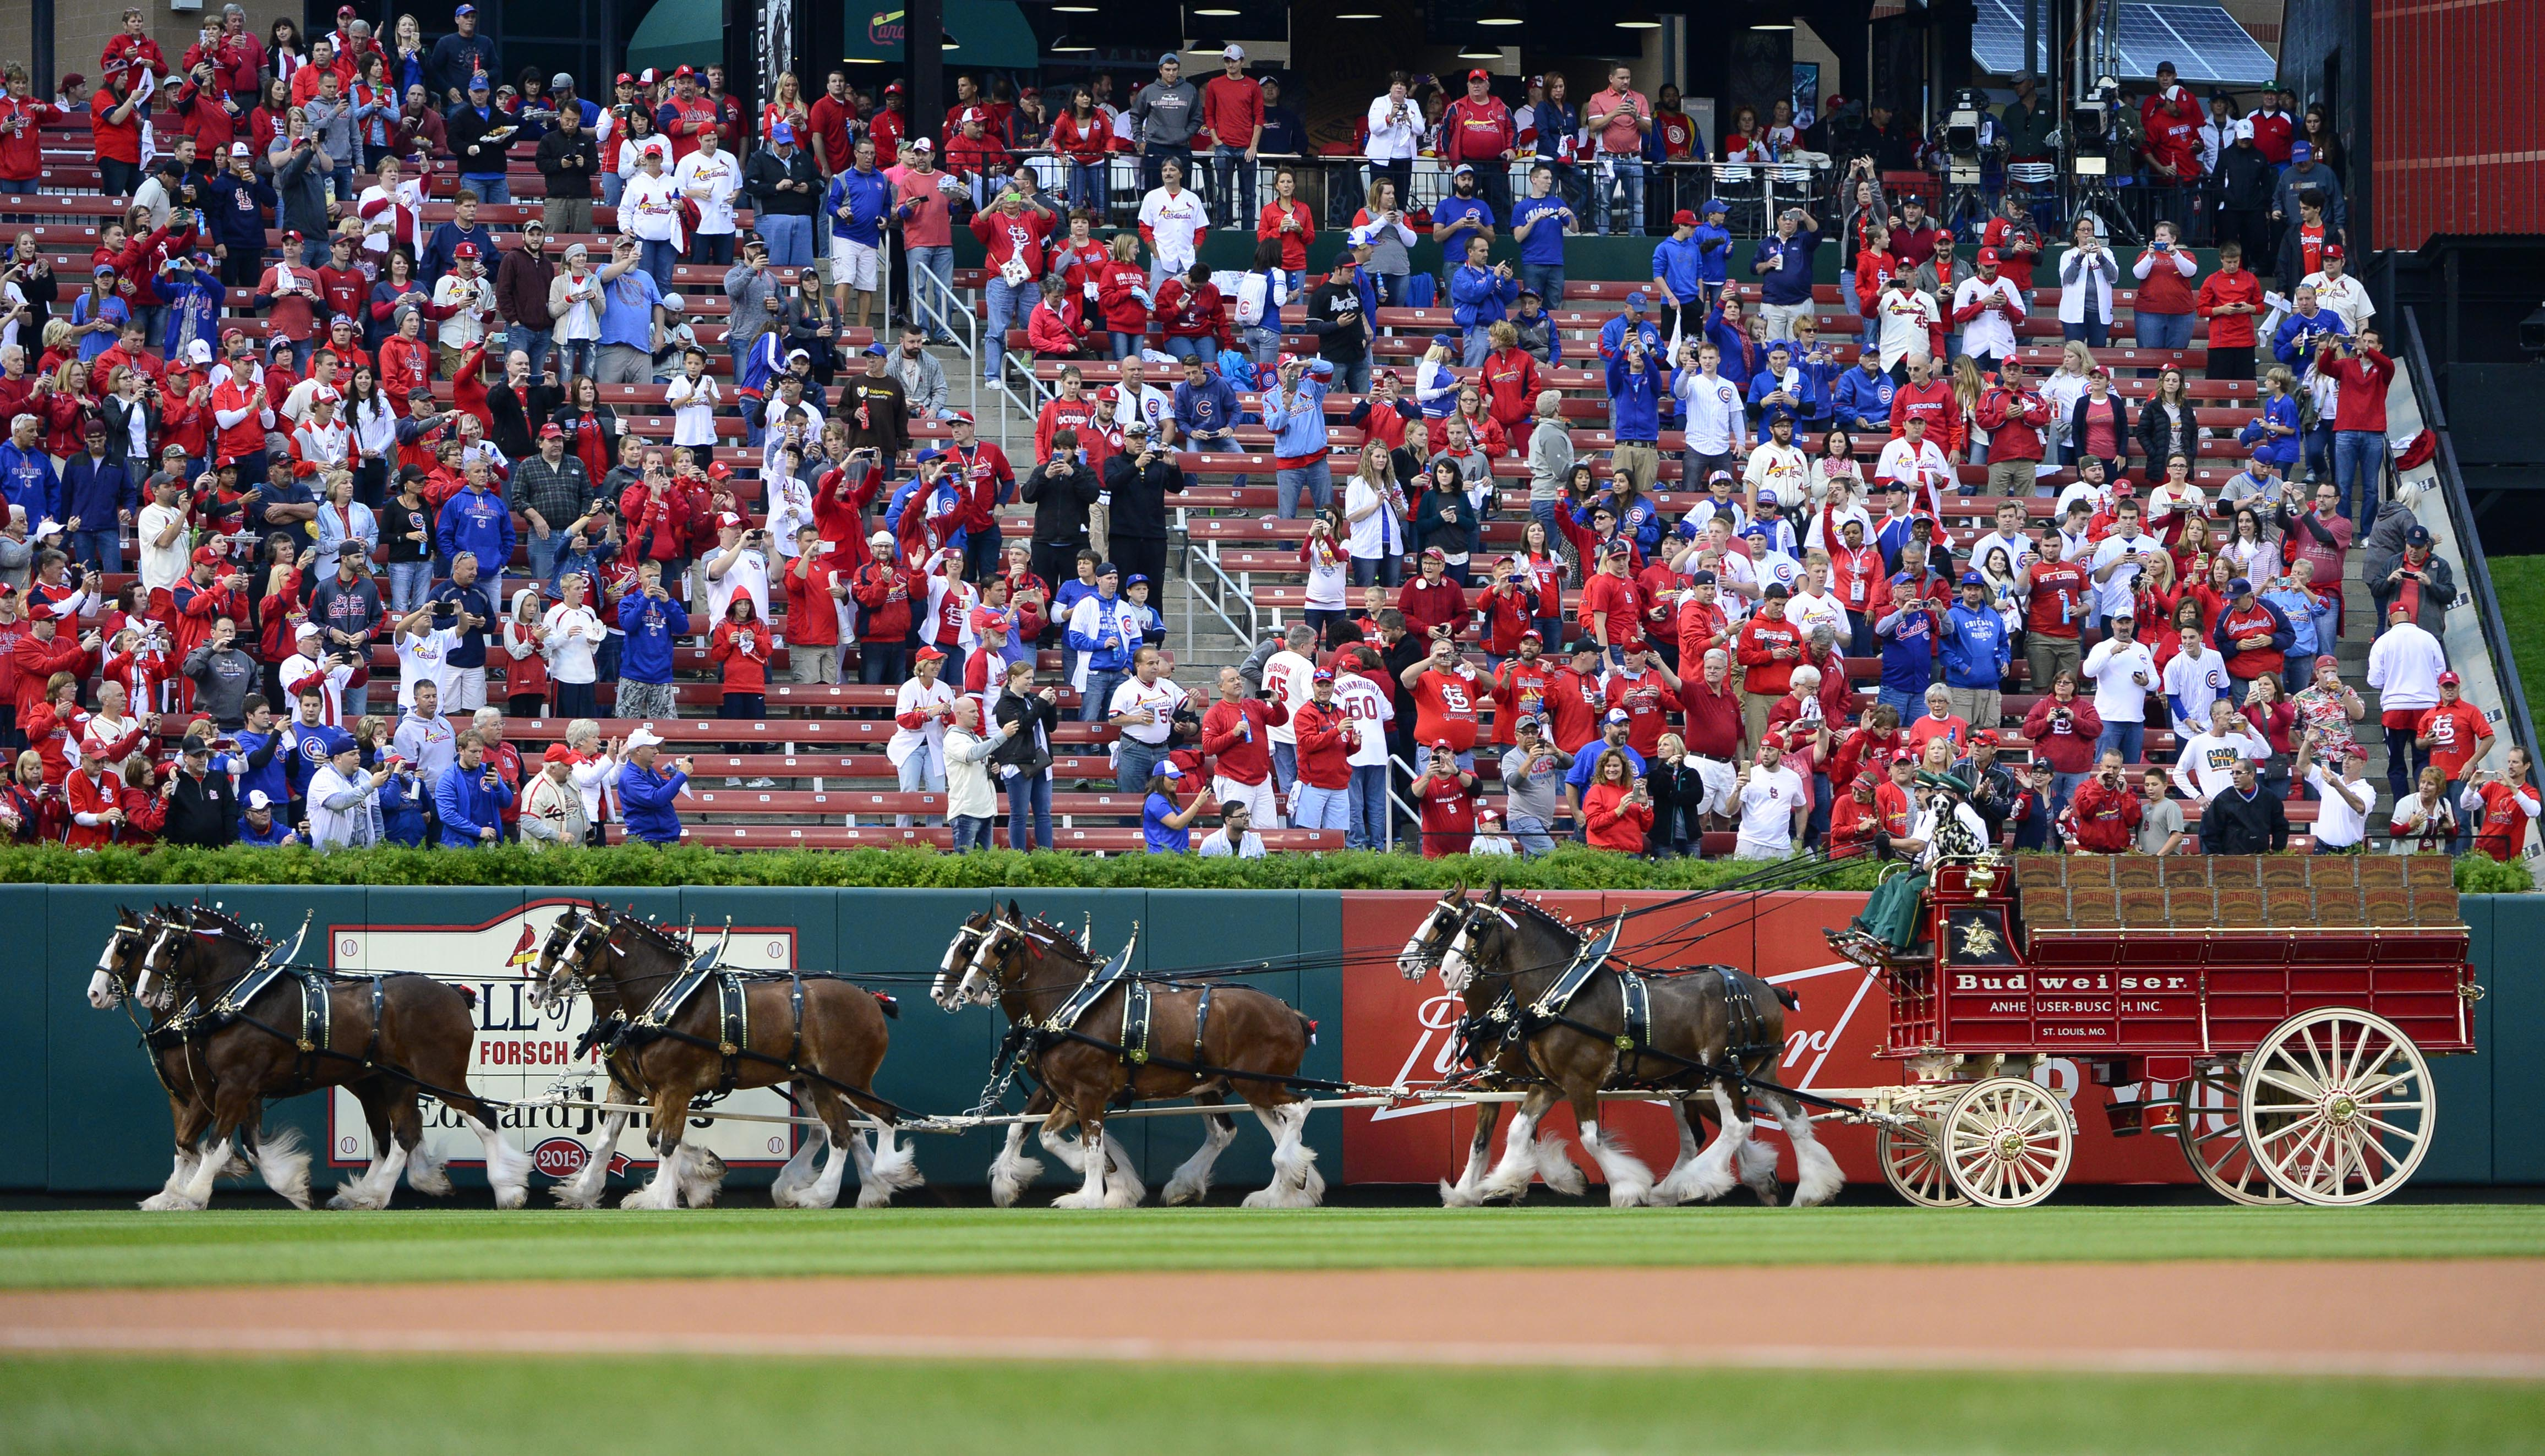 8850249-mlb-nlds-chicago-cubs-at-st.-louis-cardinals